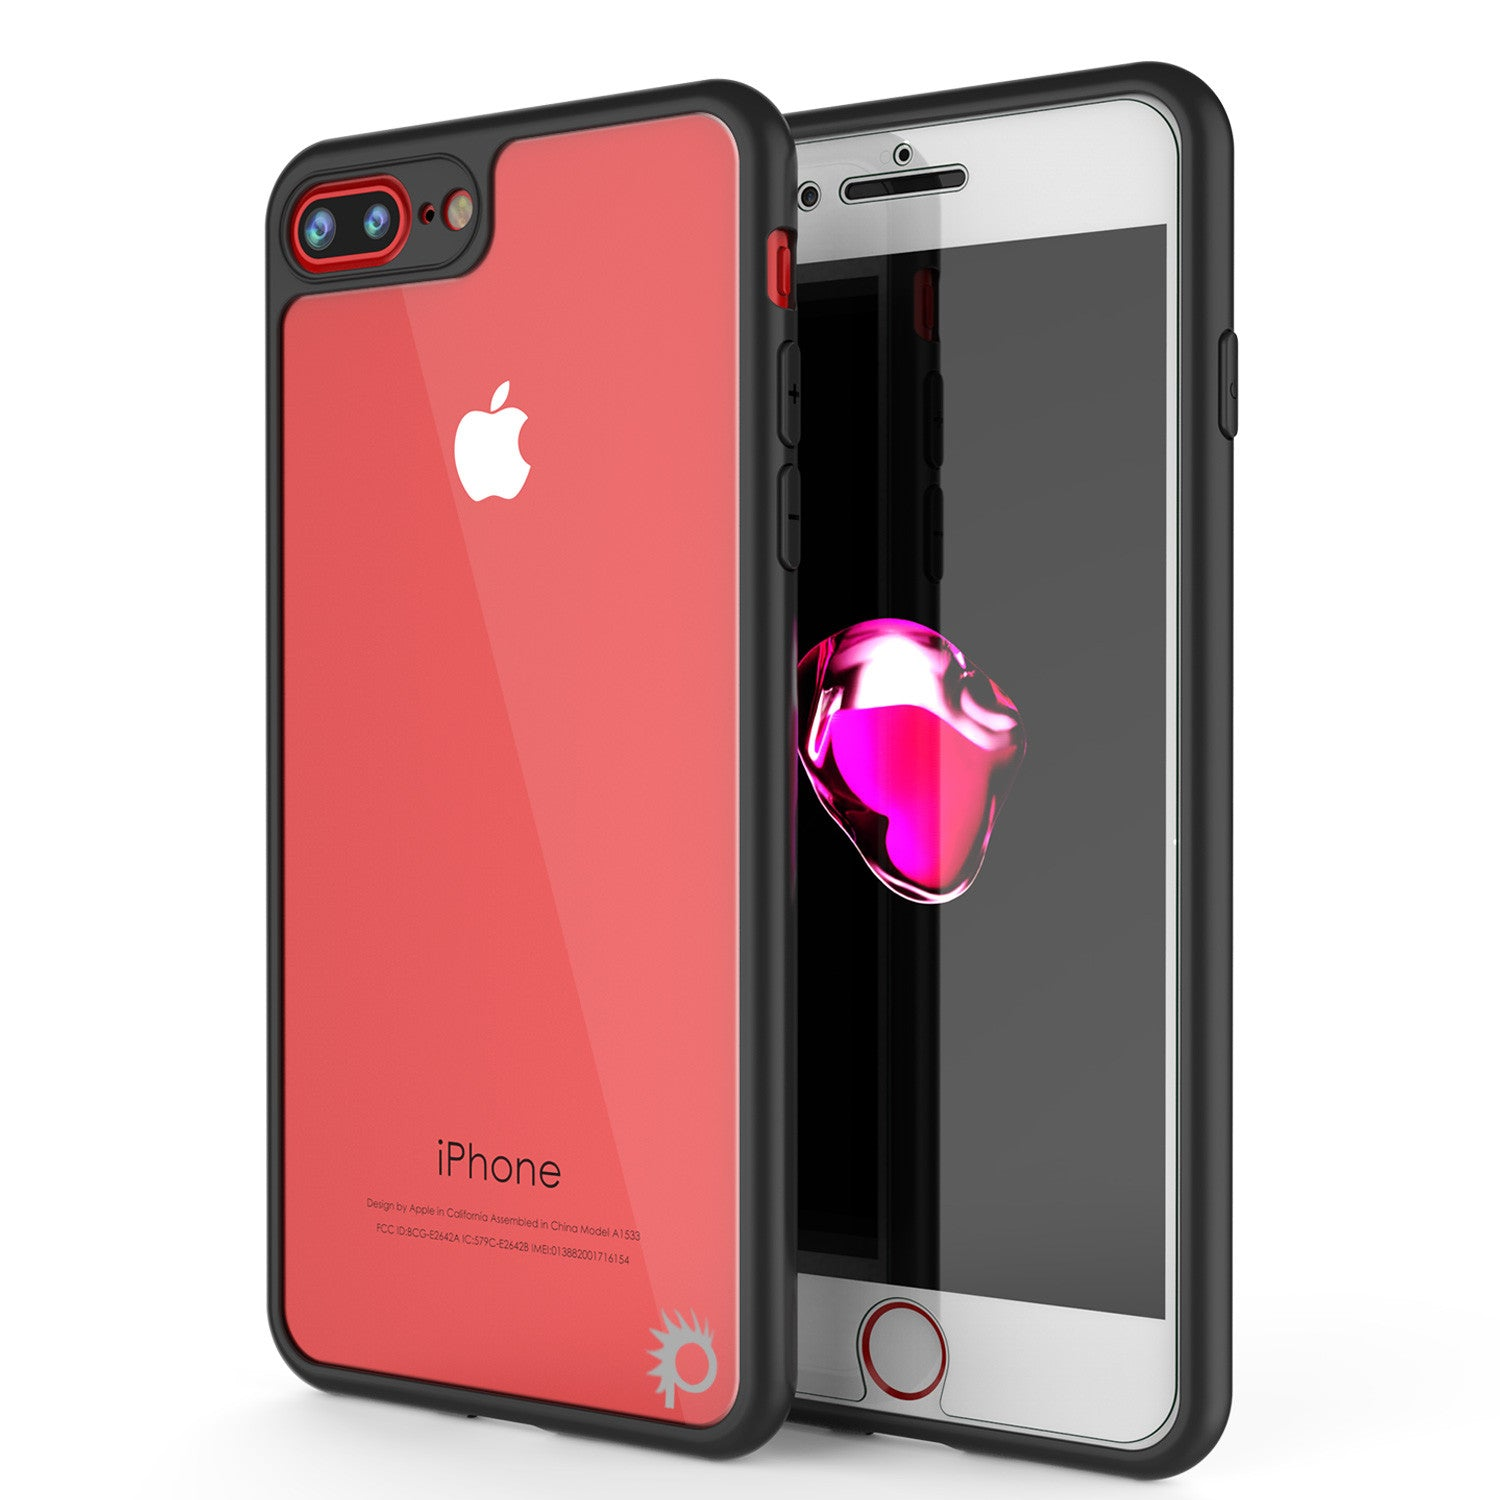 buy online cca98 dd65a iPhone 7 PLUS Case, Punkcase [MASK Series] Full Body Hybrid Dual Layer